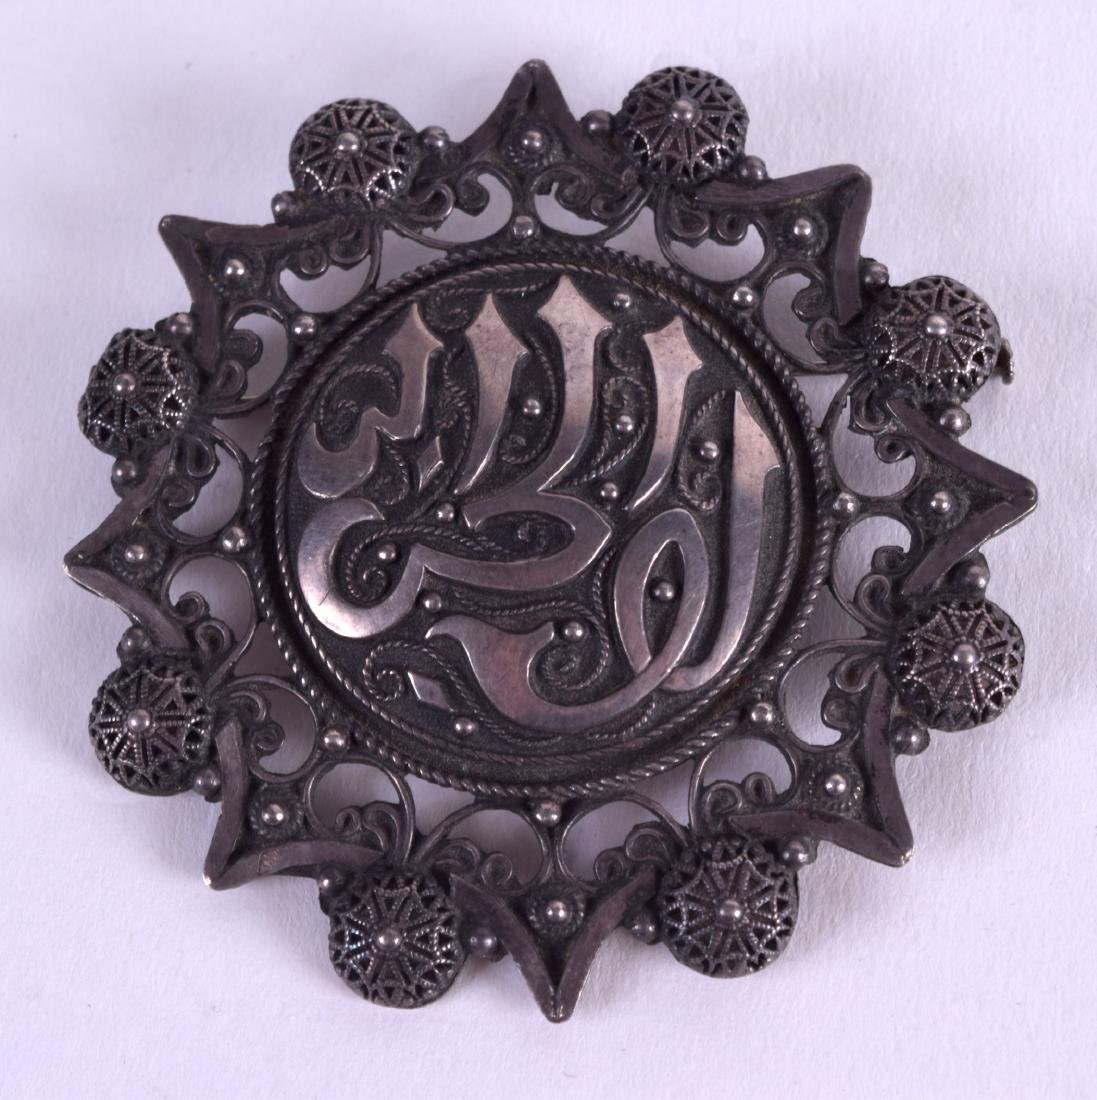 A 19TH CENTURY MIDDLE EASTERN ISLAMIC SILVER BROOCH